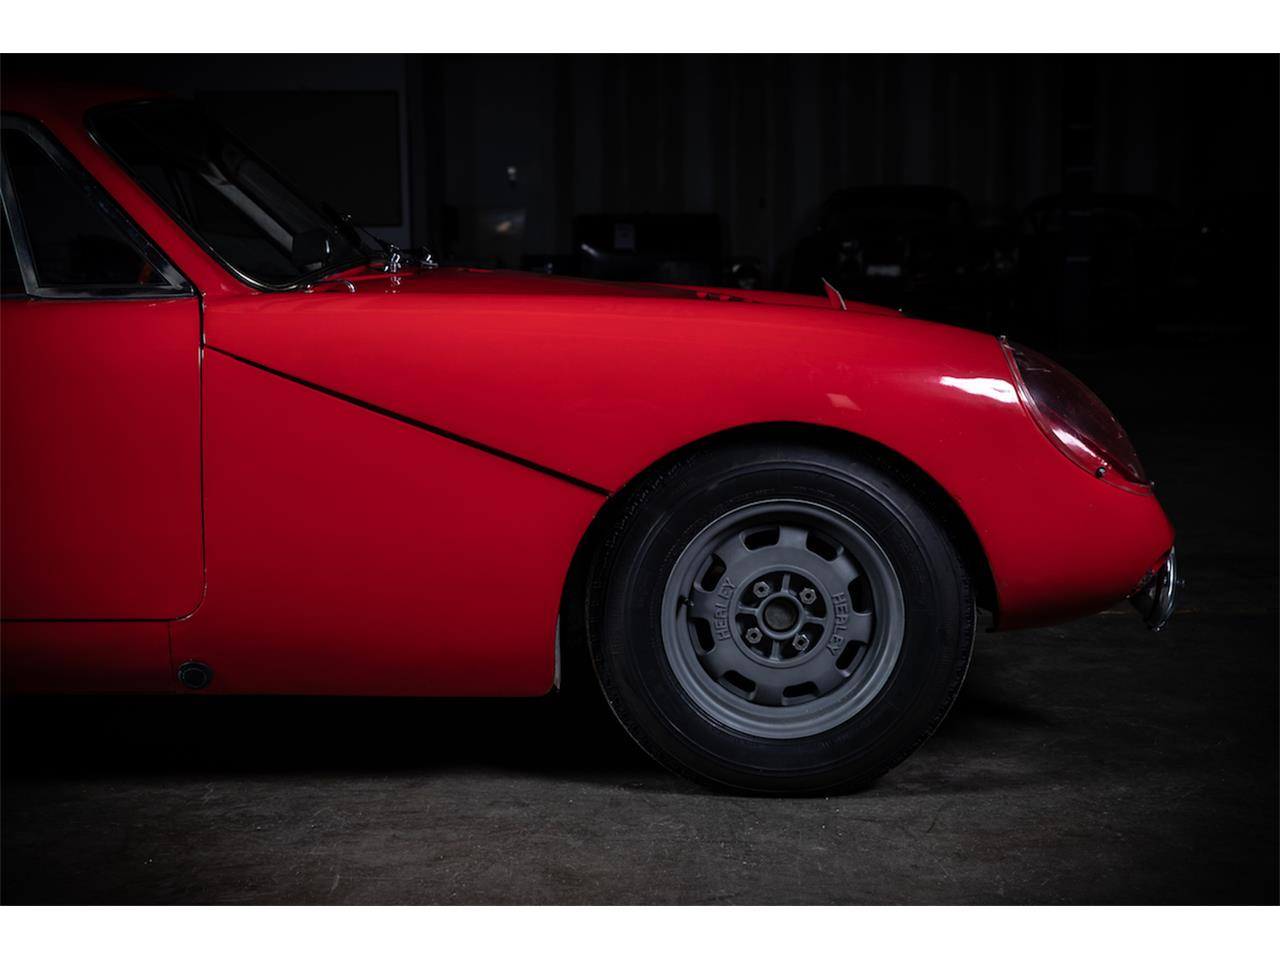 1964 Austin-Healey Sebring (CC-1089655) for sale in Bethel, Connecticut